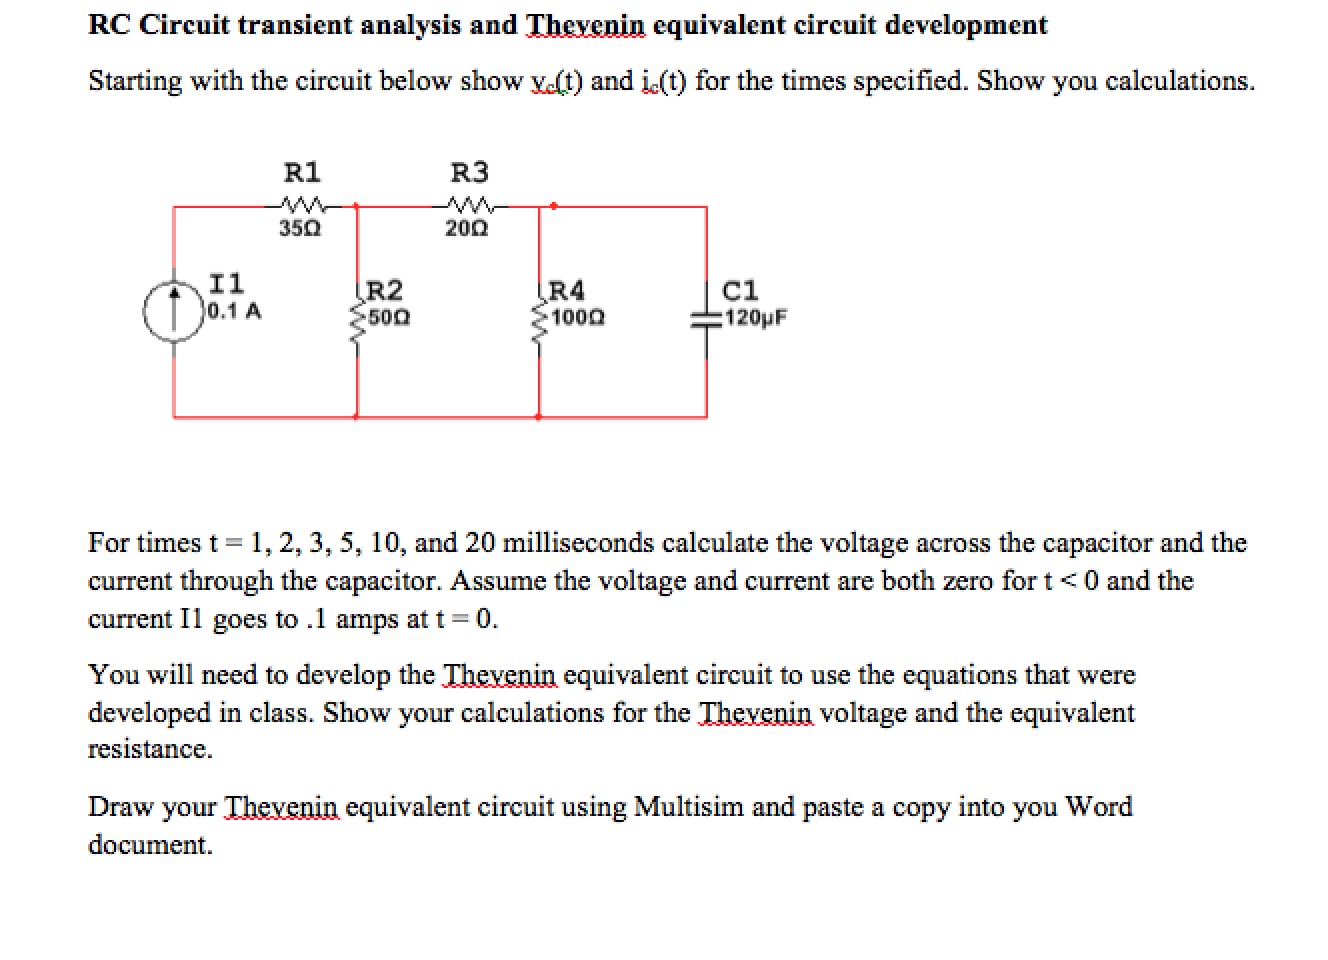 Solved Rc Circuit Transient Analysis And Thevenin Equival Pictures Question Equivalent Development Starting With The Circ